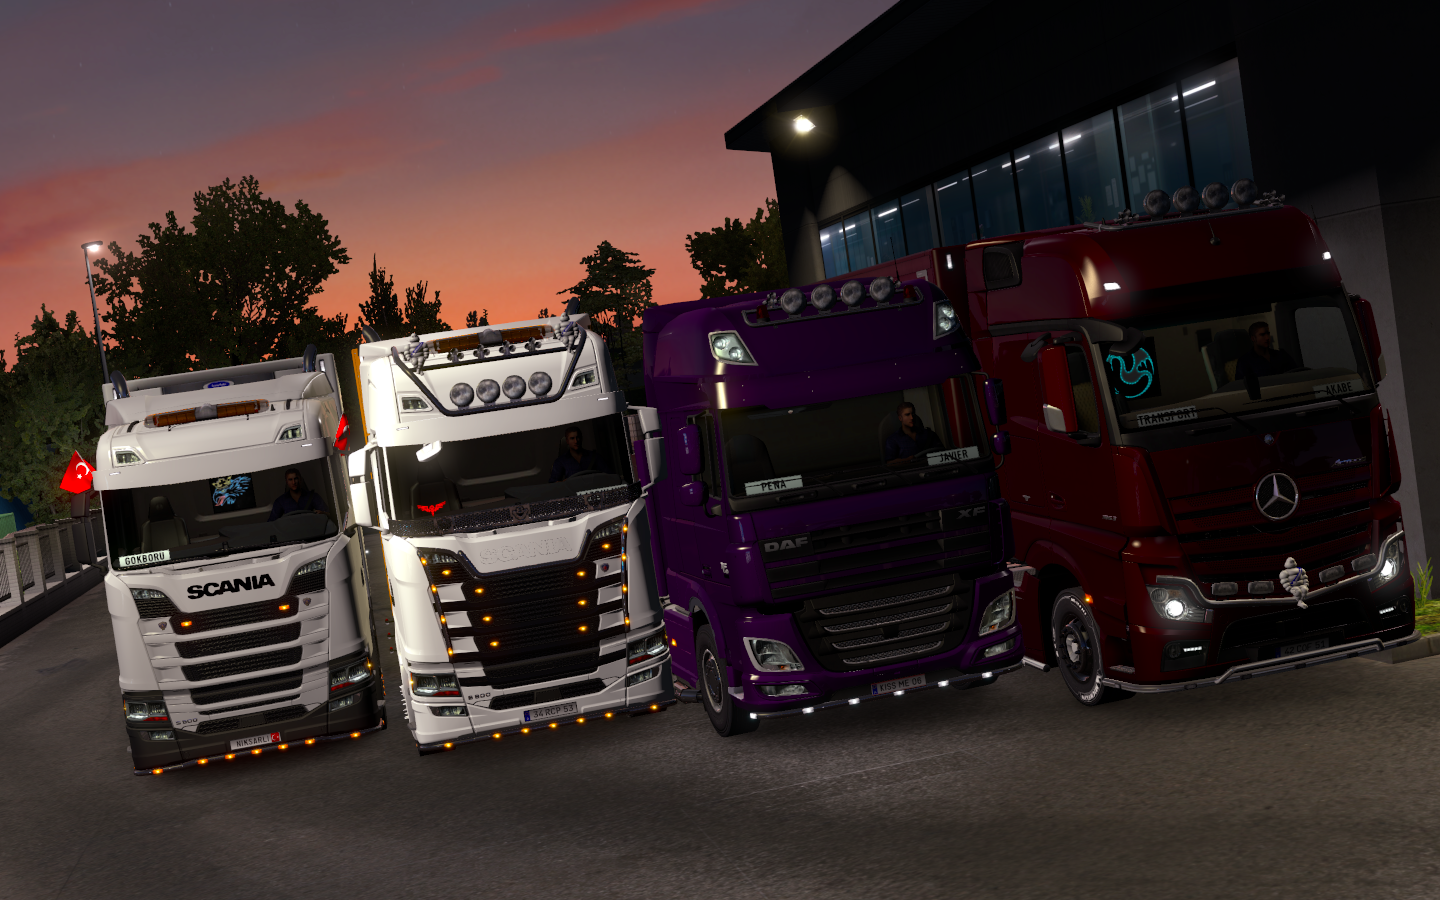 ets2_20190709_014848_00.png